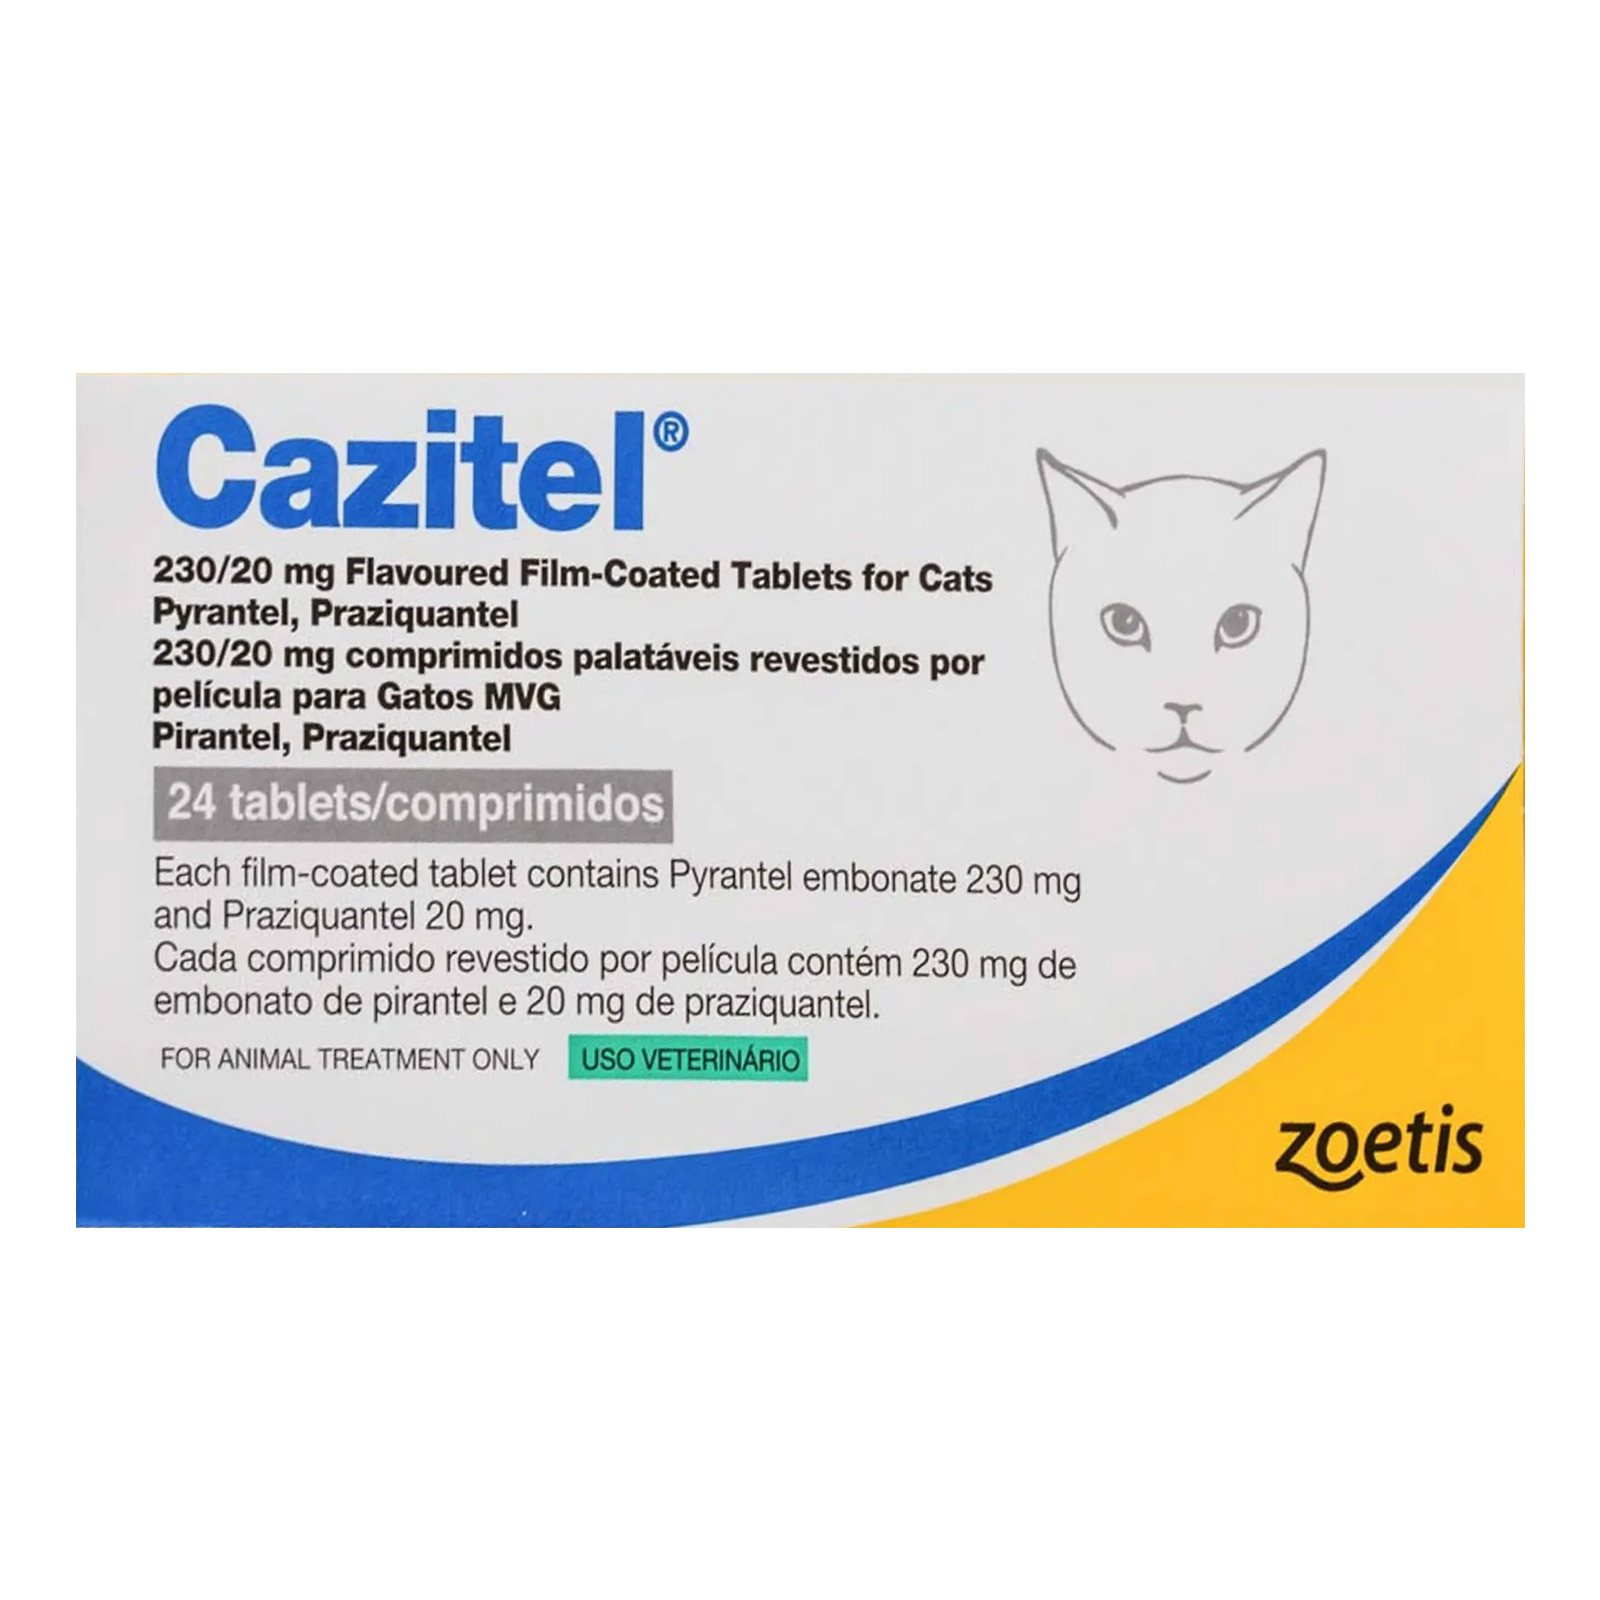 Cazitel tablets for cats are for the treatment and prevention of roundworms and tapeworms in cats. Buy now at best price and free shipping from BudgetPetCare.com